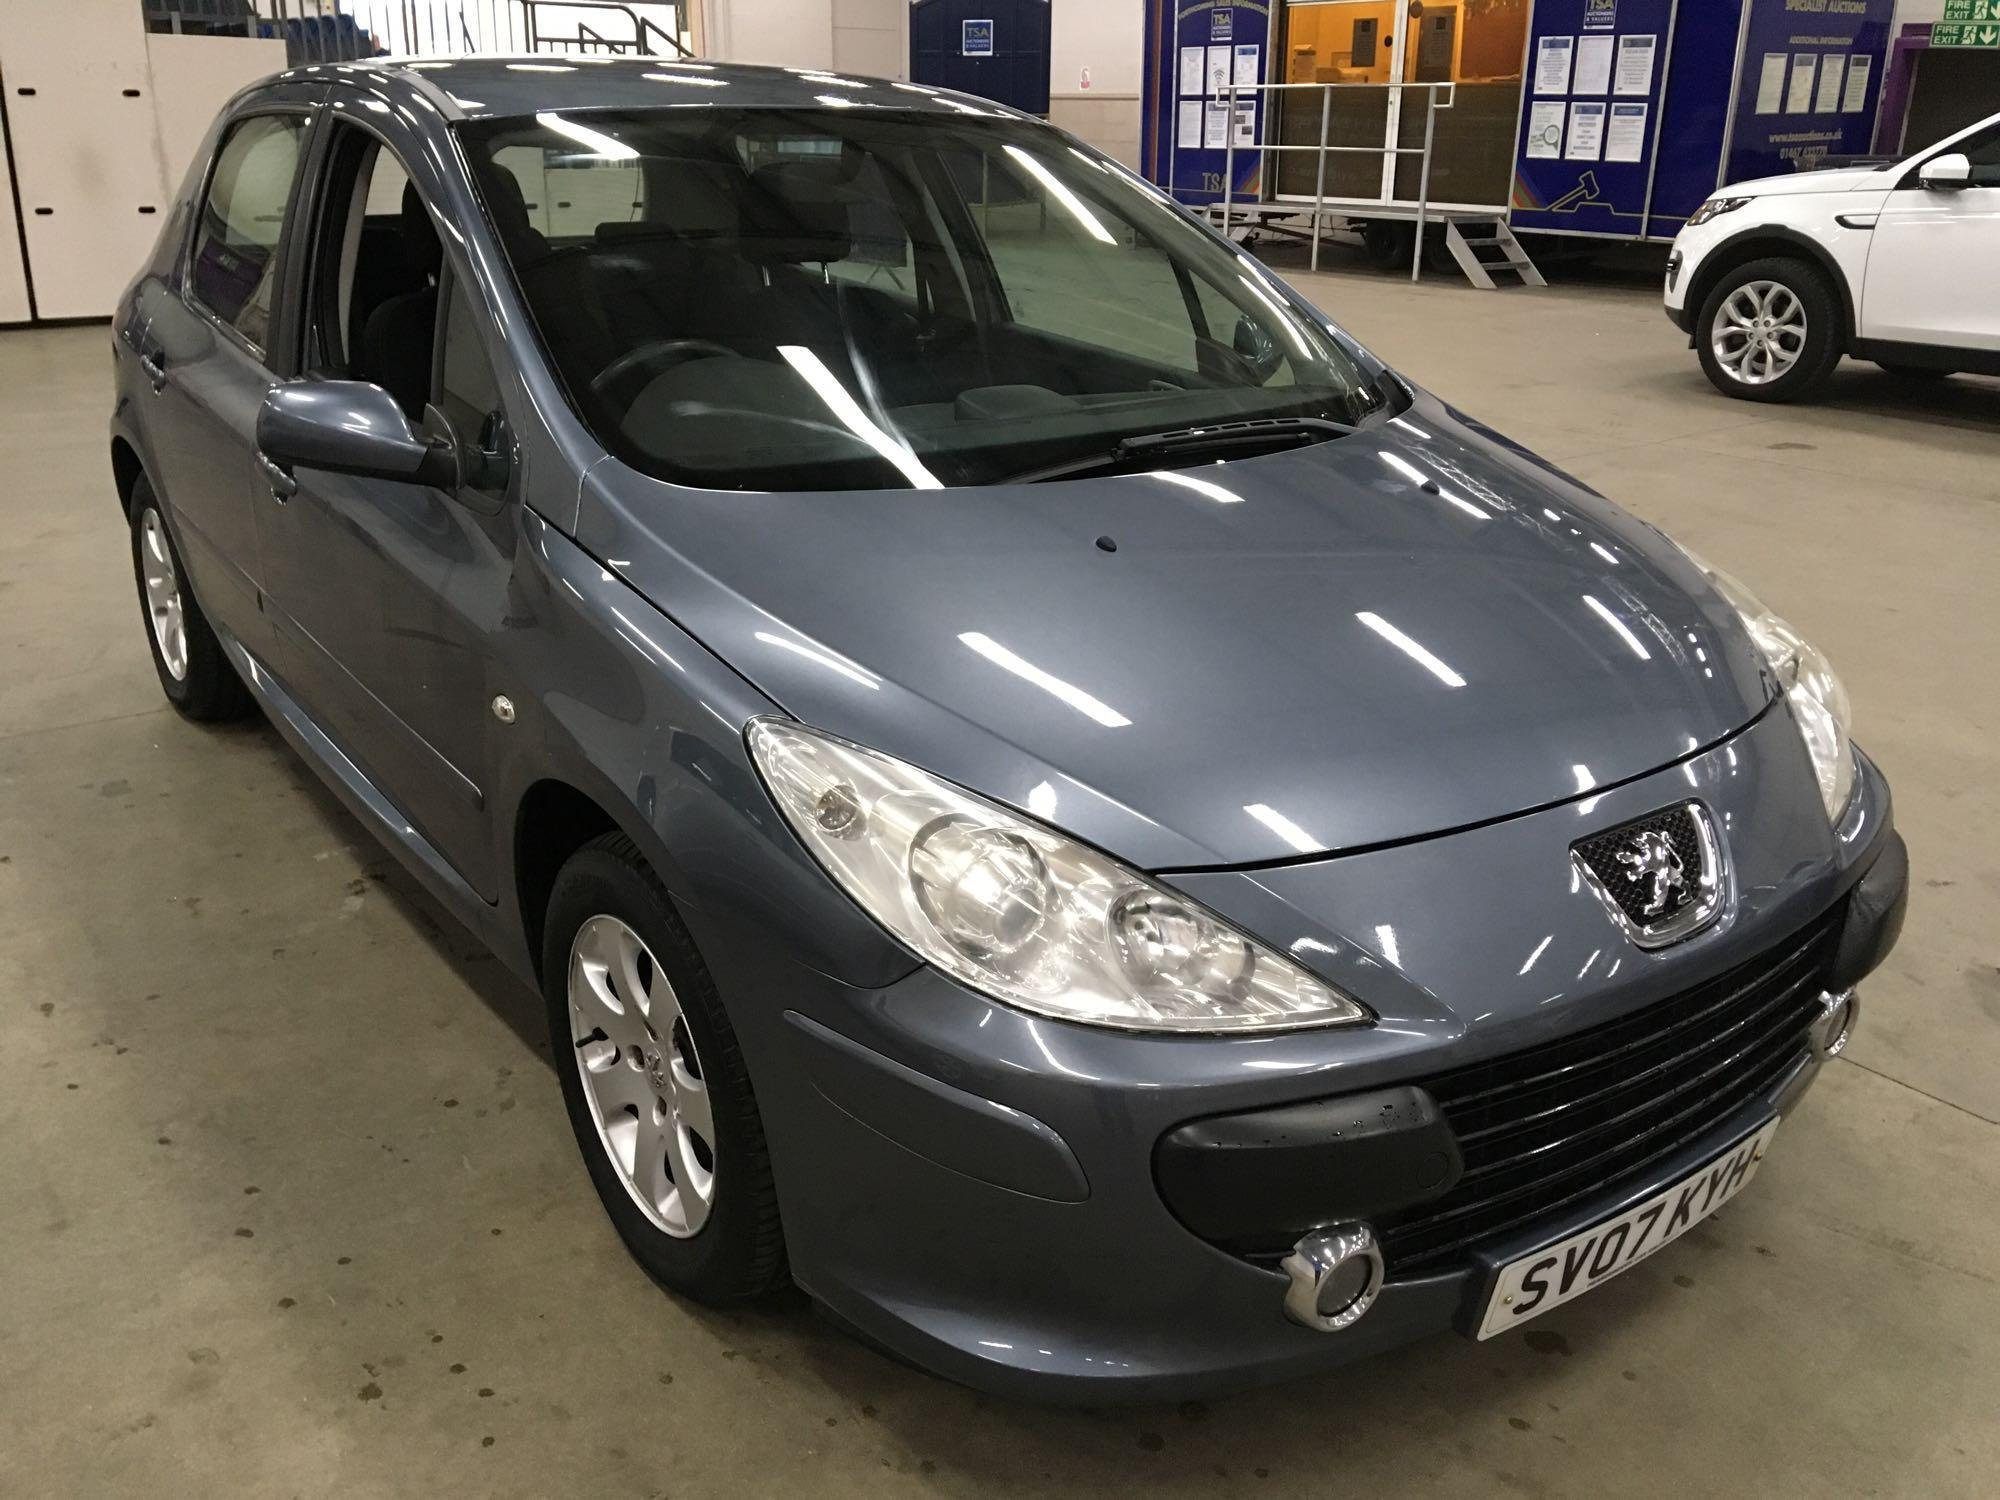 Lot 203 - Peugeot 307 X-line - 1360cc 5 Door